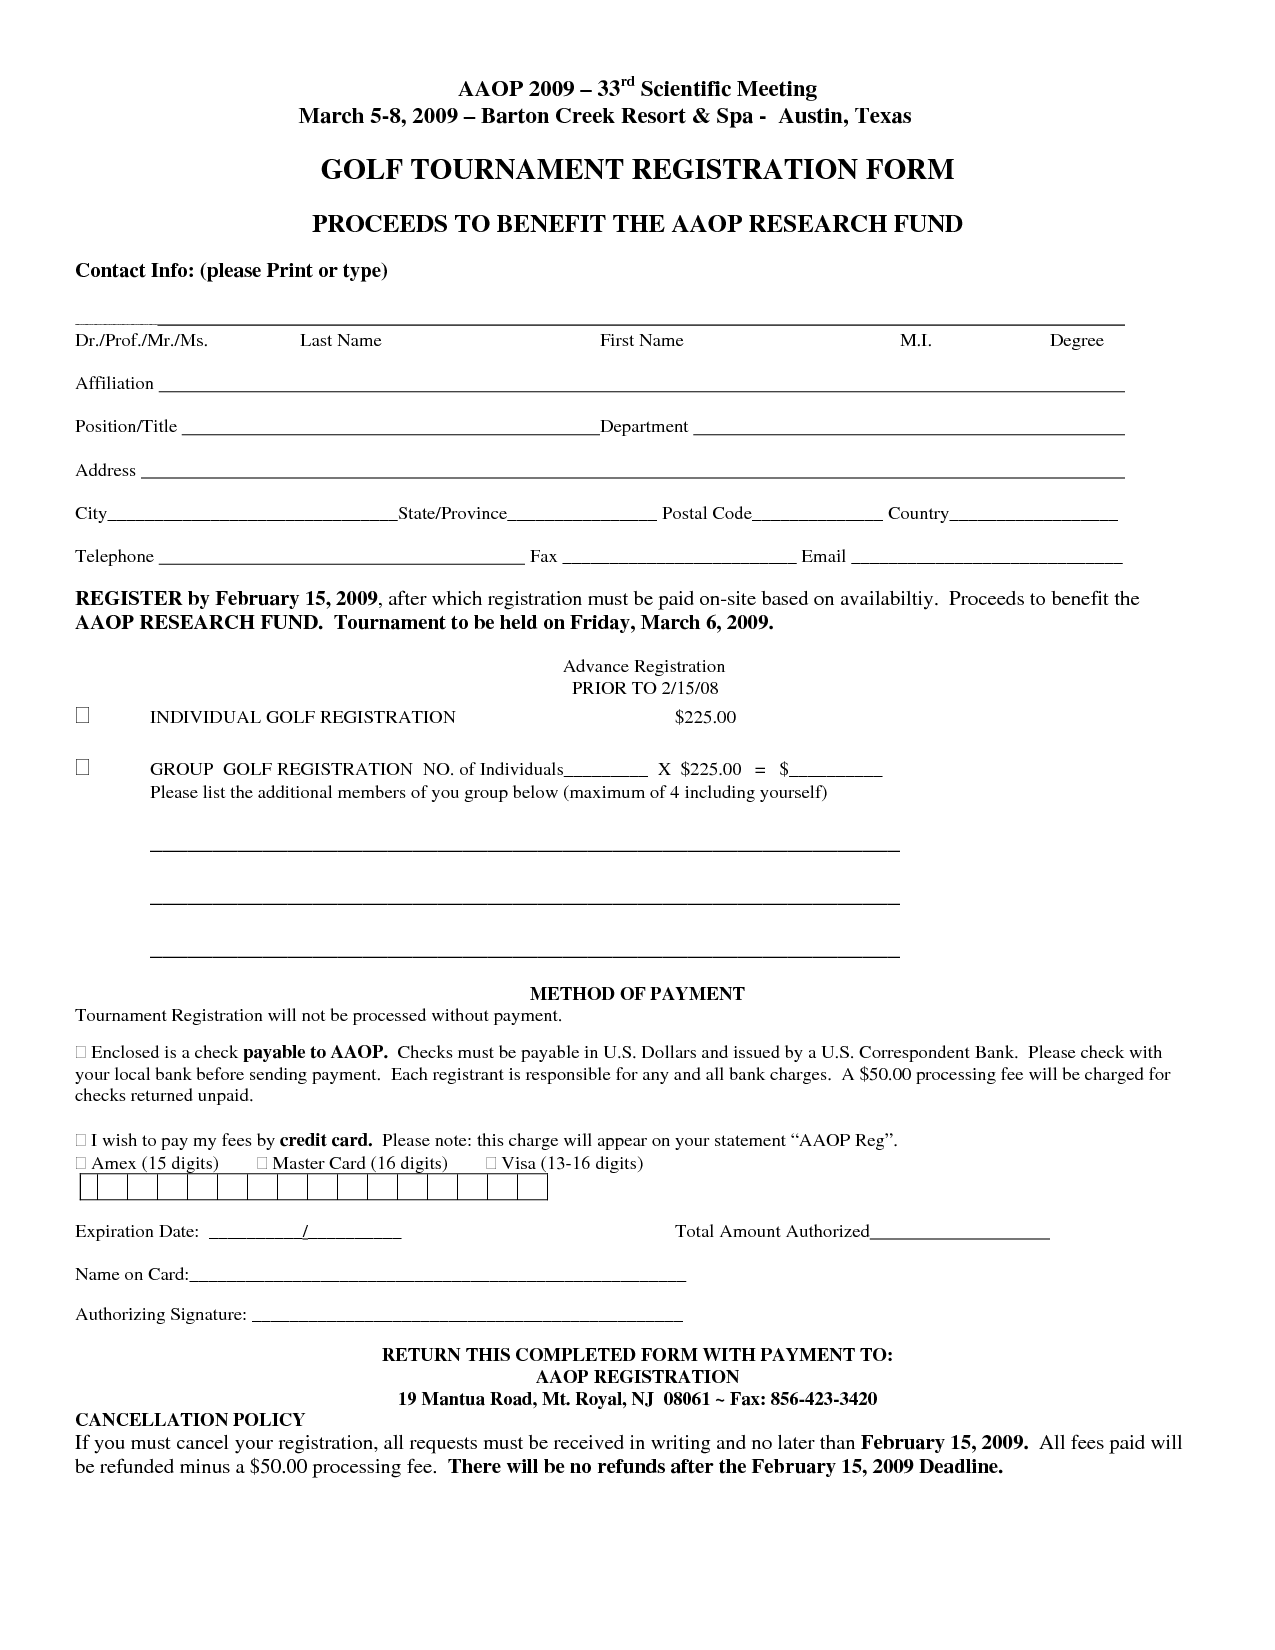 Golf Tournament Registration Form Template